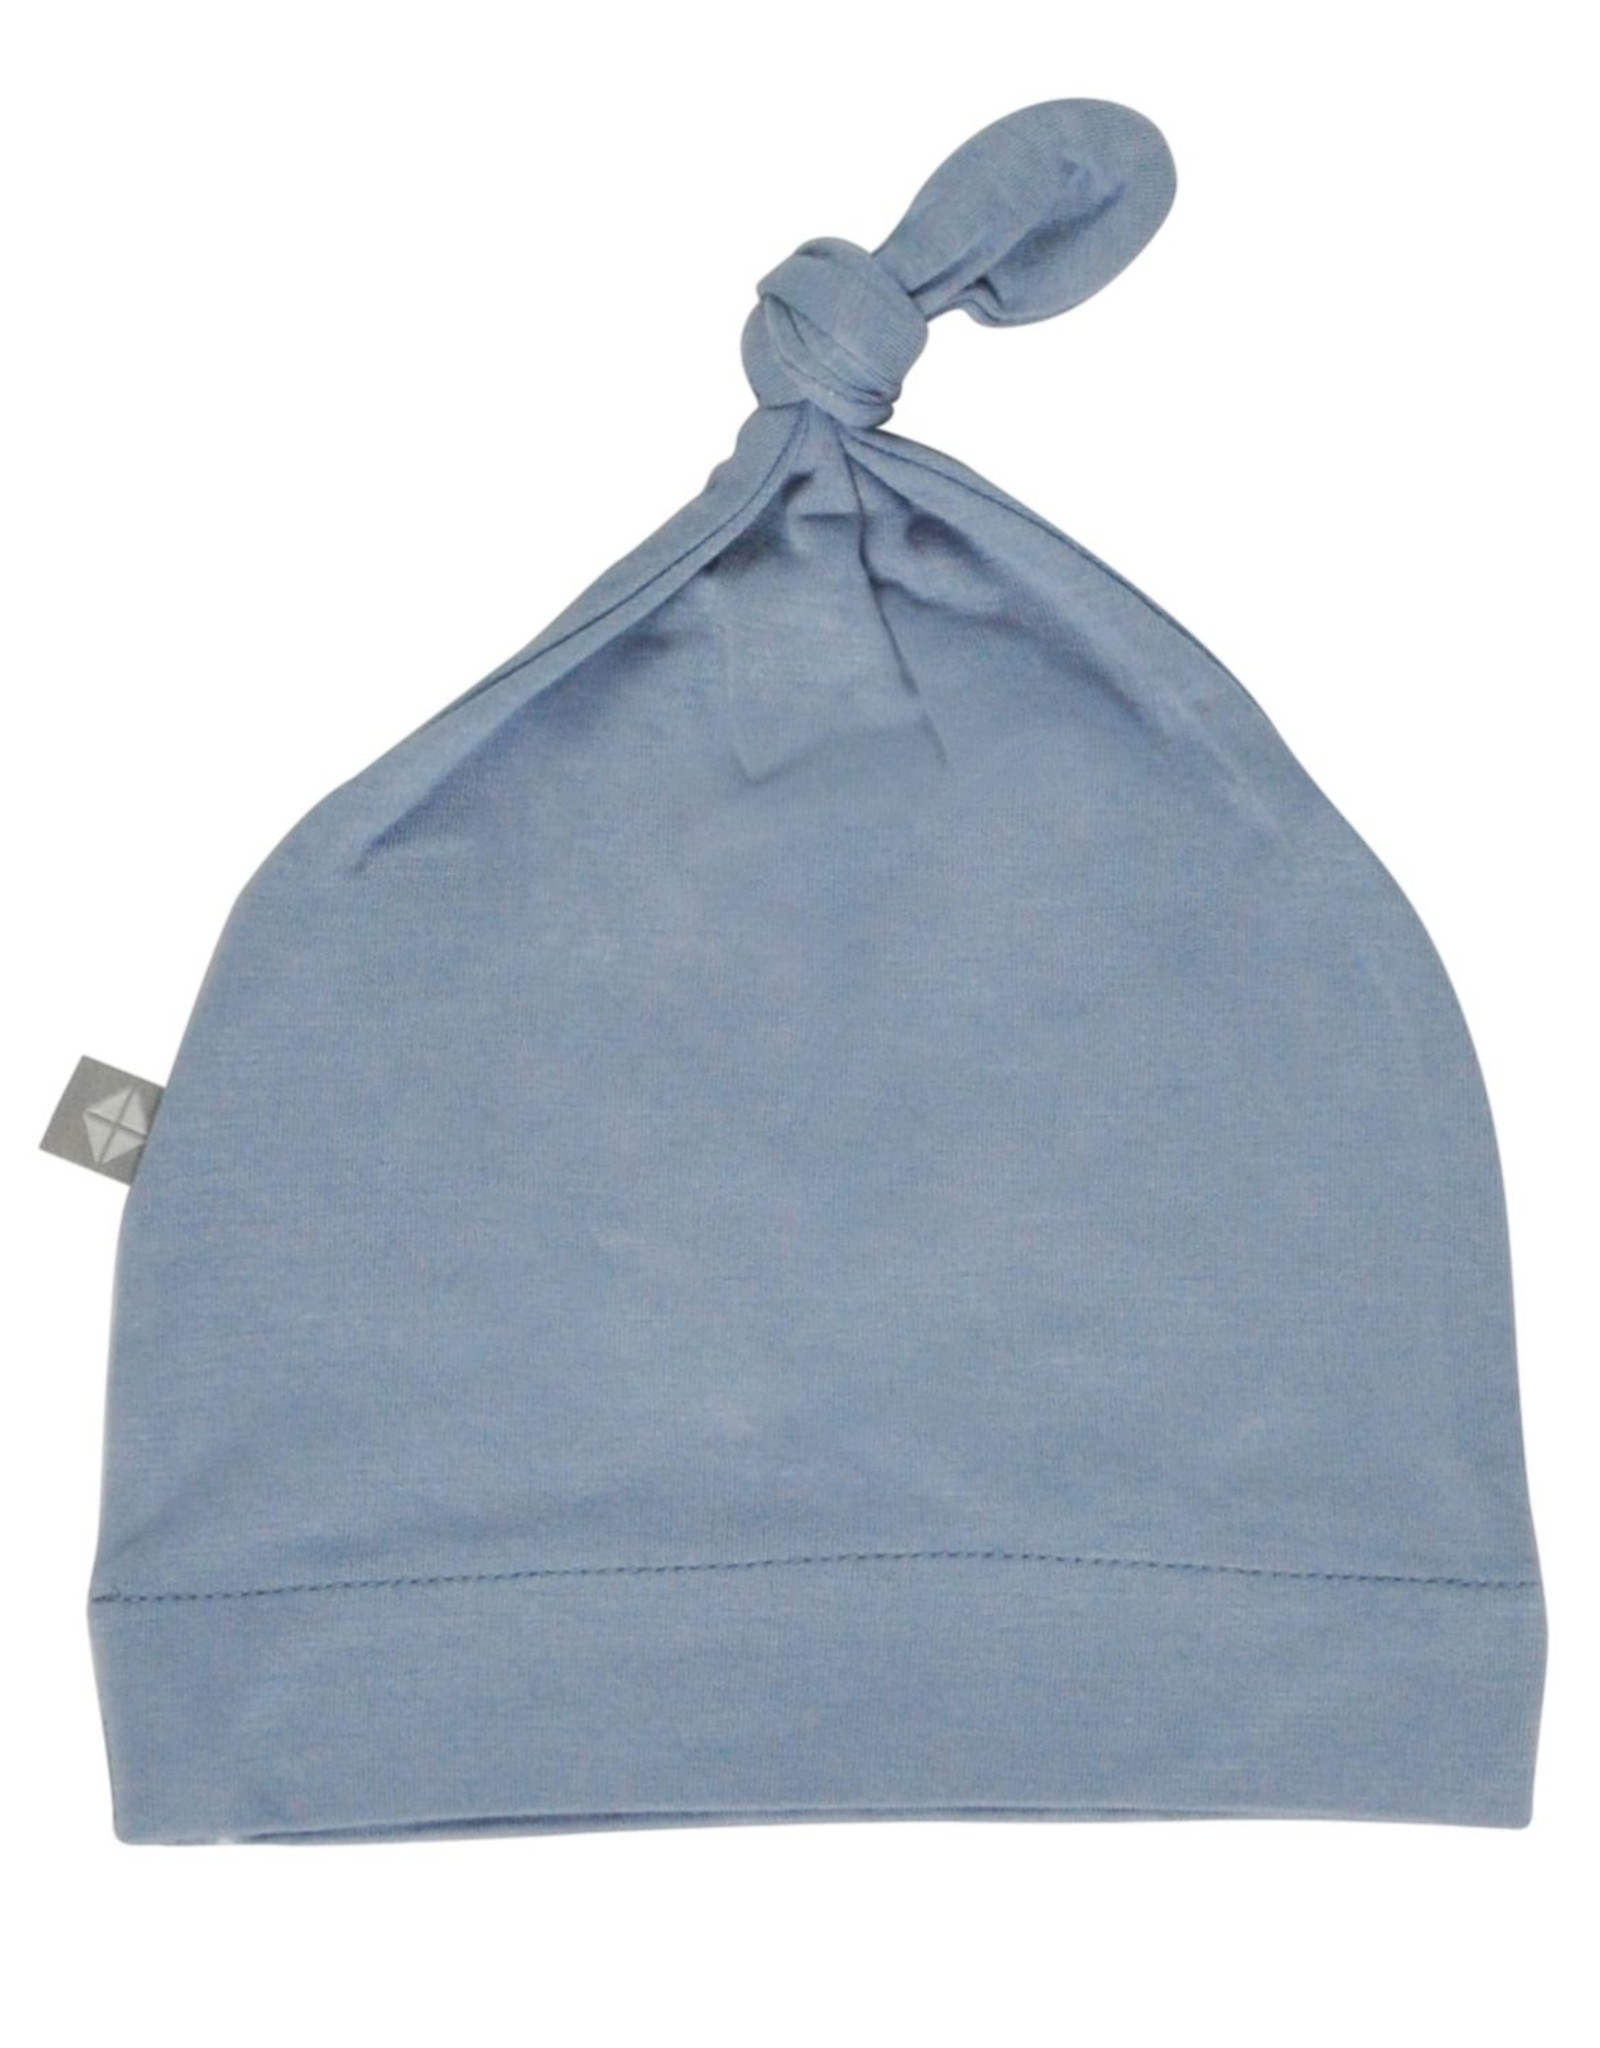 Kyte Baby knotted cap- slate